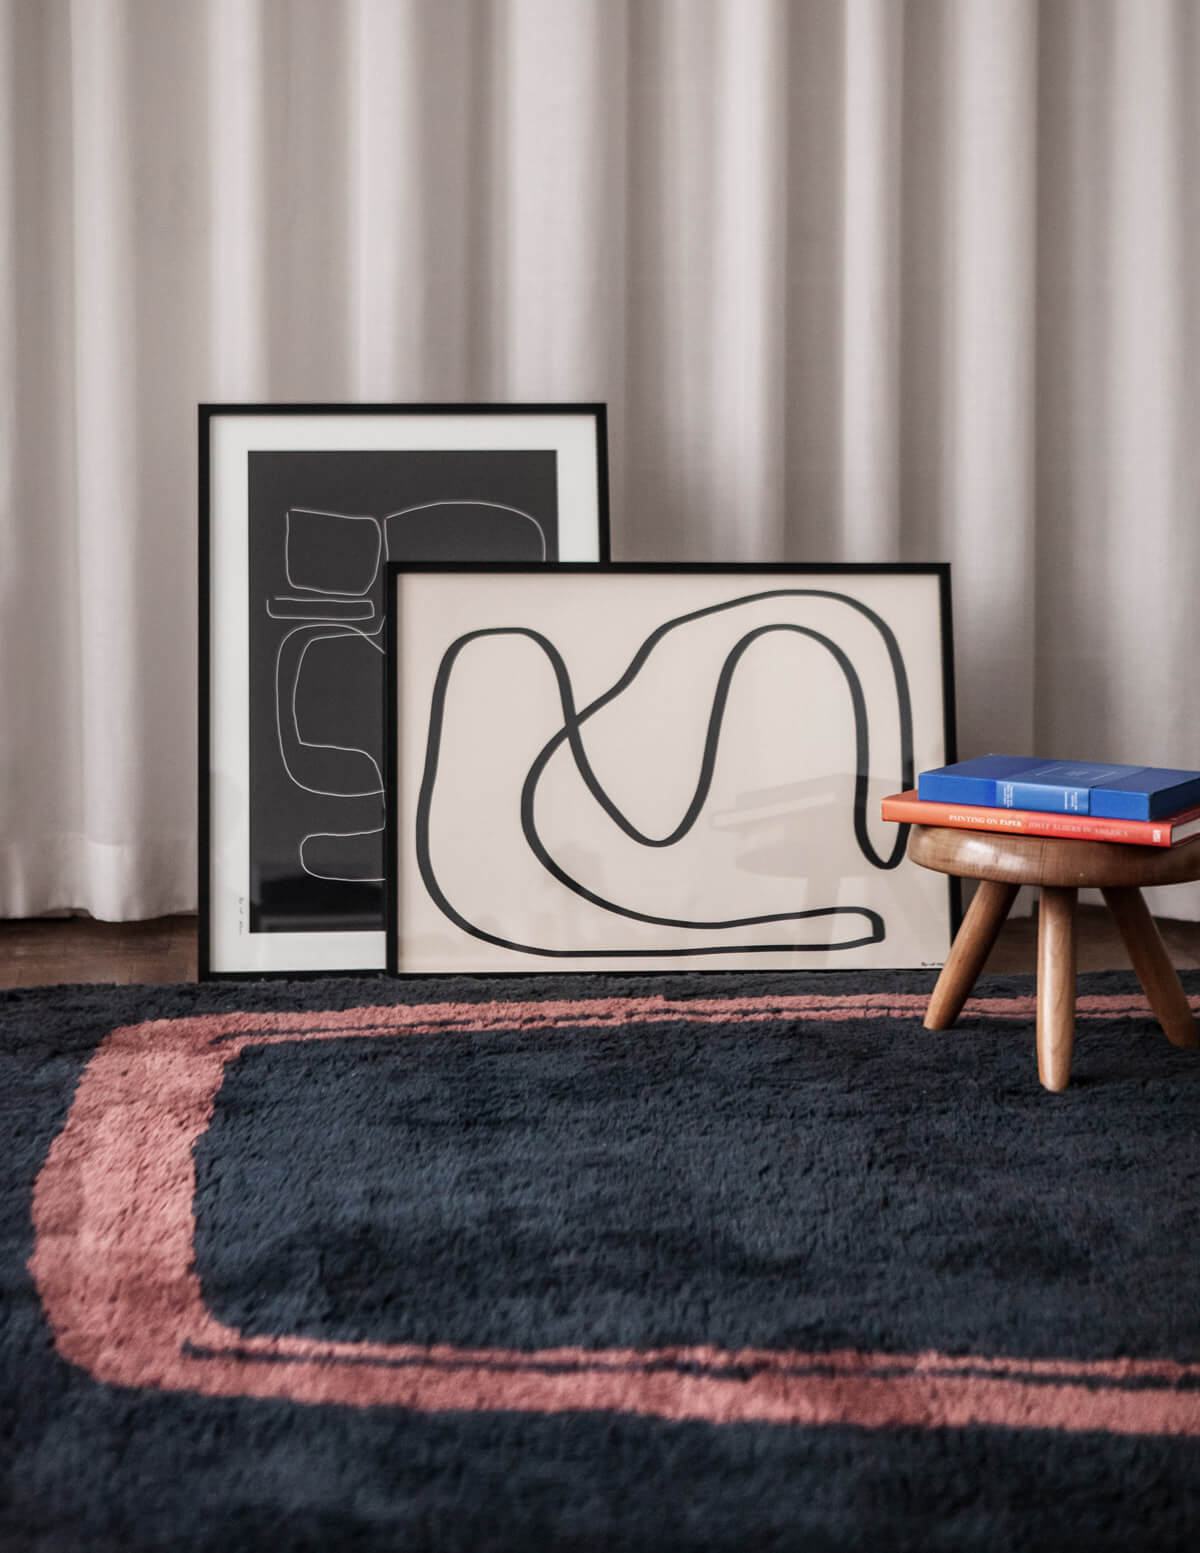 Simple Object 11 shown with the artwork for the Art on Rugs collection.